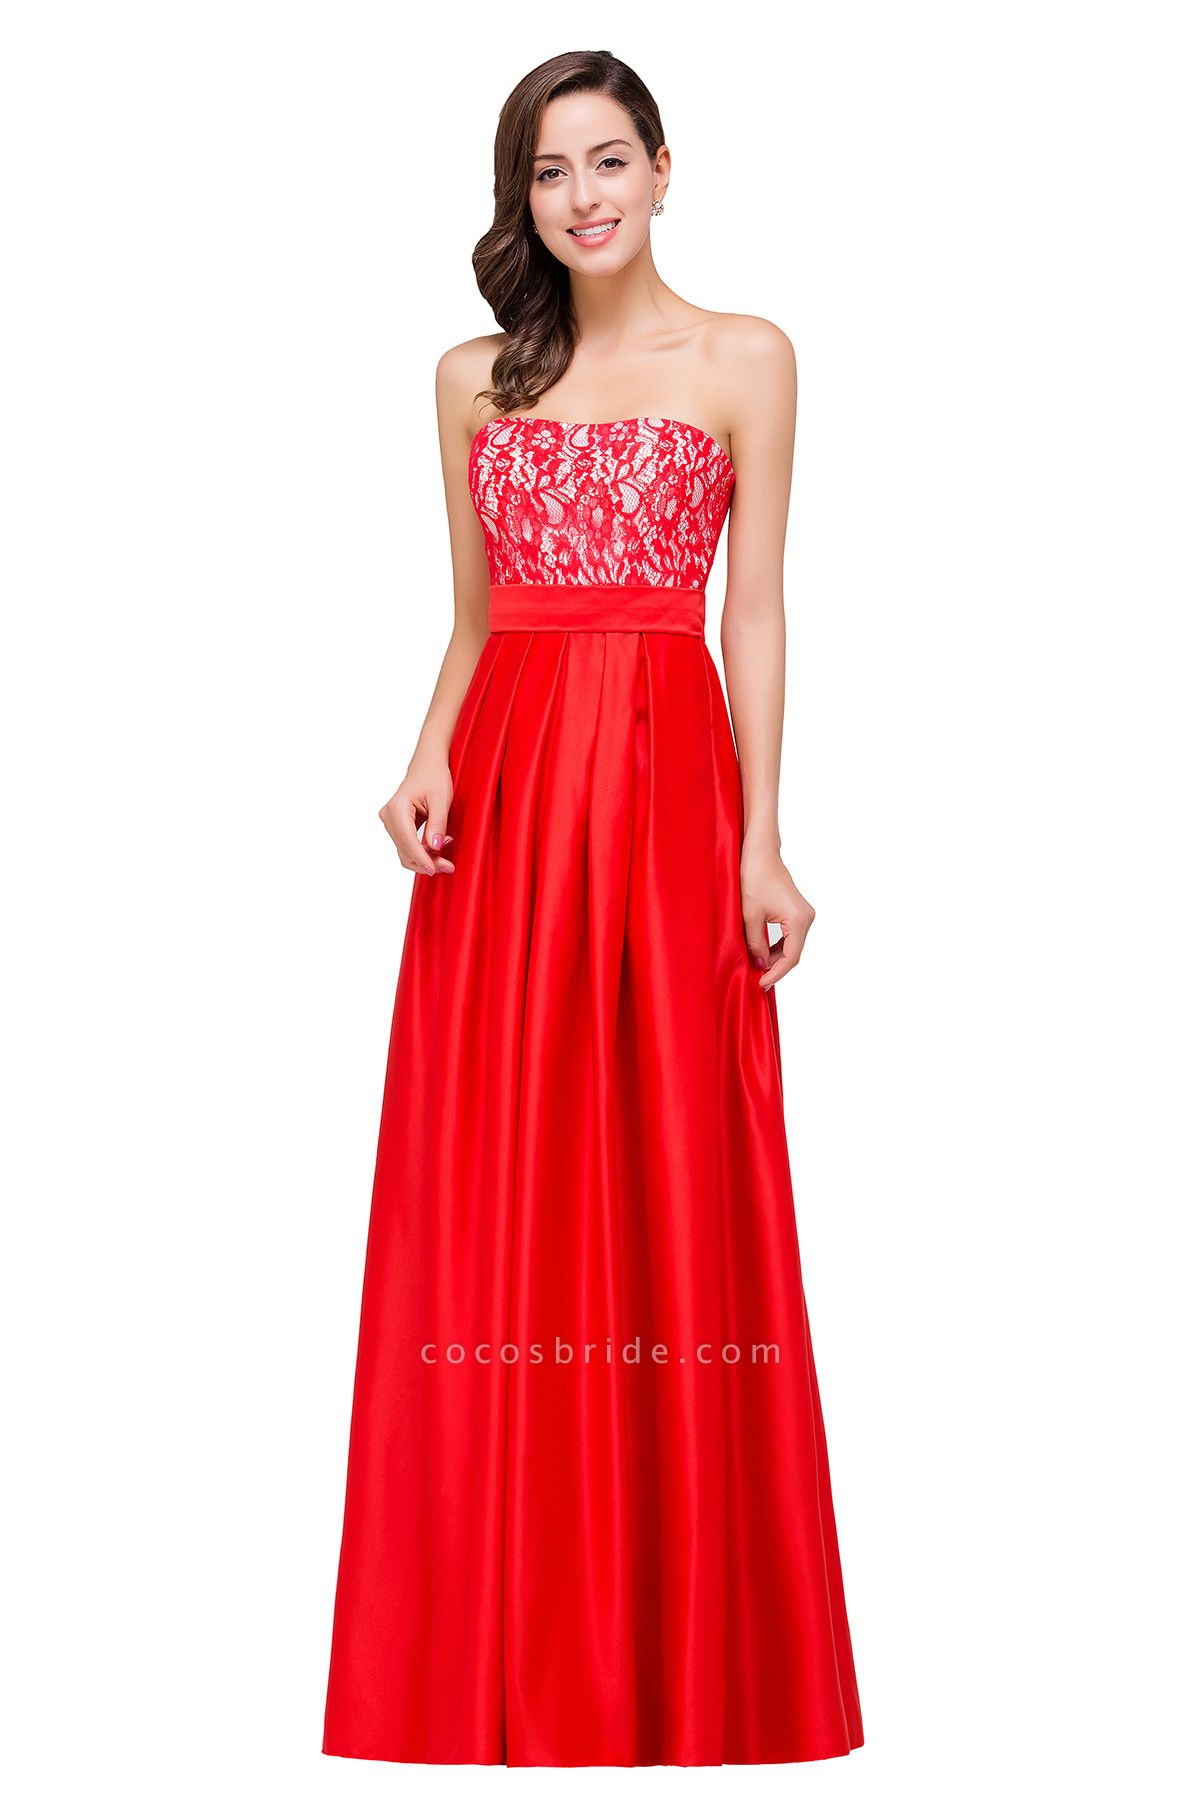 EVERLY | A-line Sleeveless Sweetheart Floor-Length Red Chiffon Prom Dresses